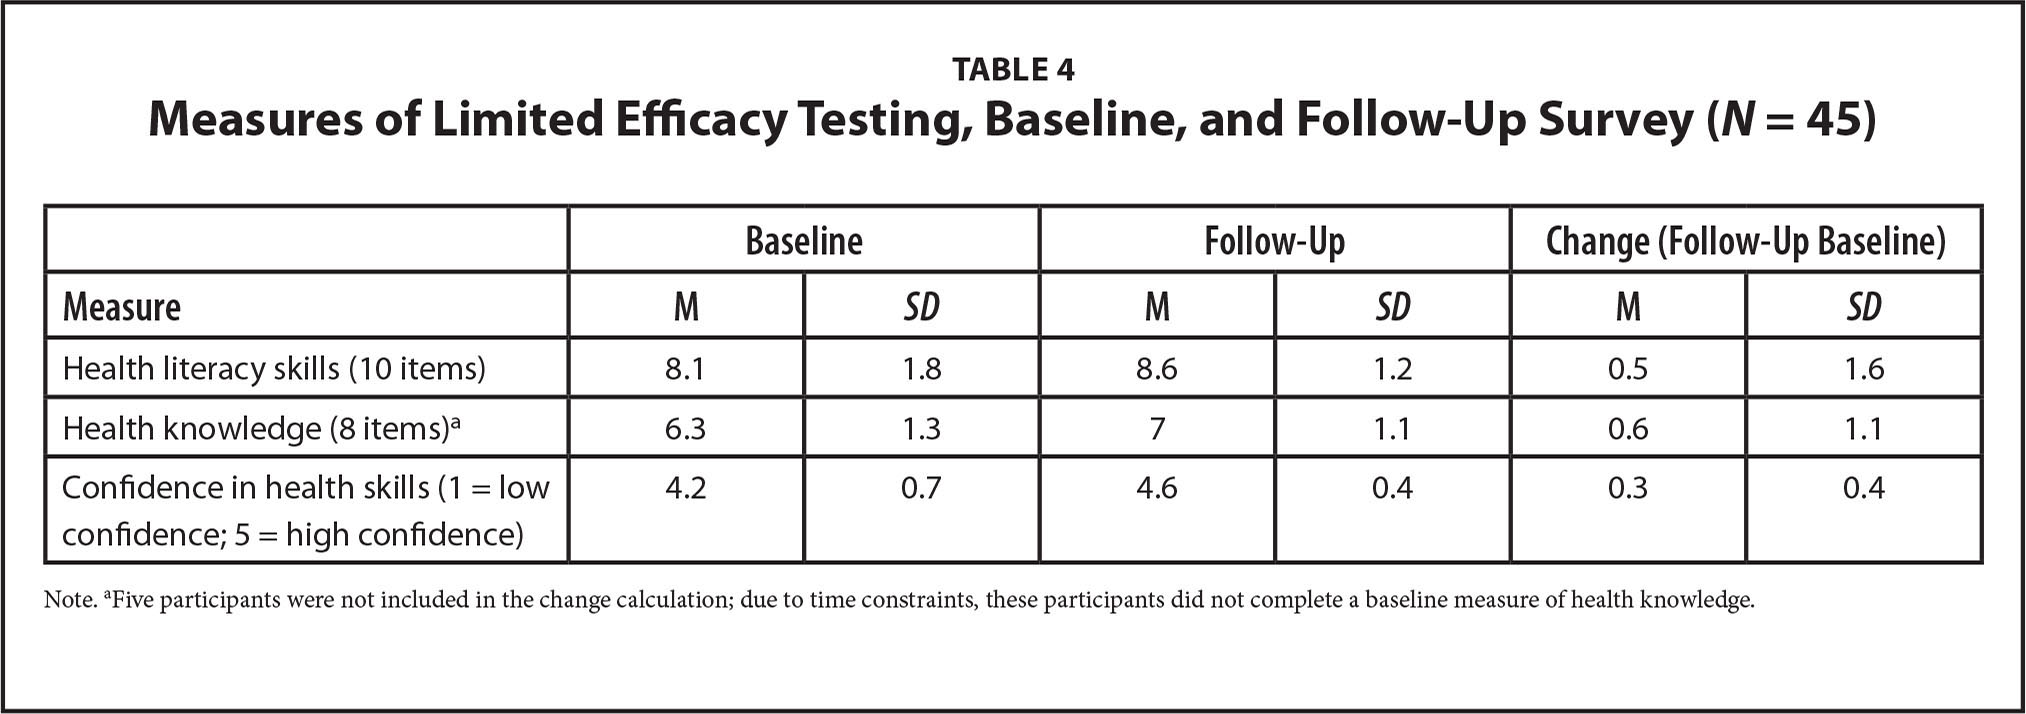 Measures of Limited Efficacy Testing, Baseline, and Follow-Up Survey (N = 45)